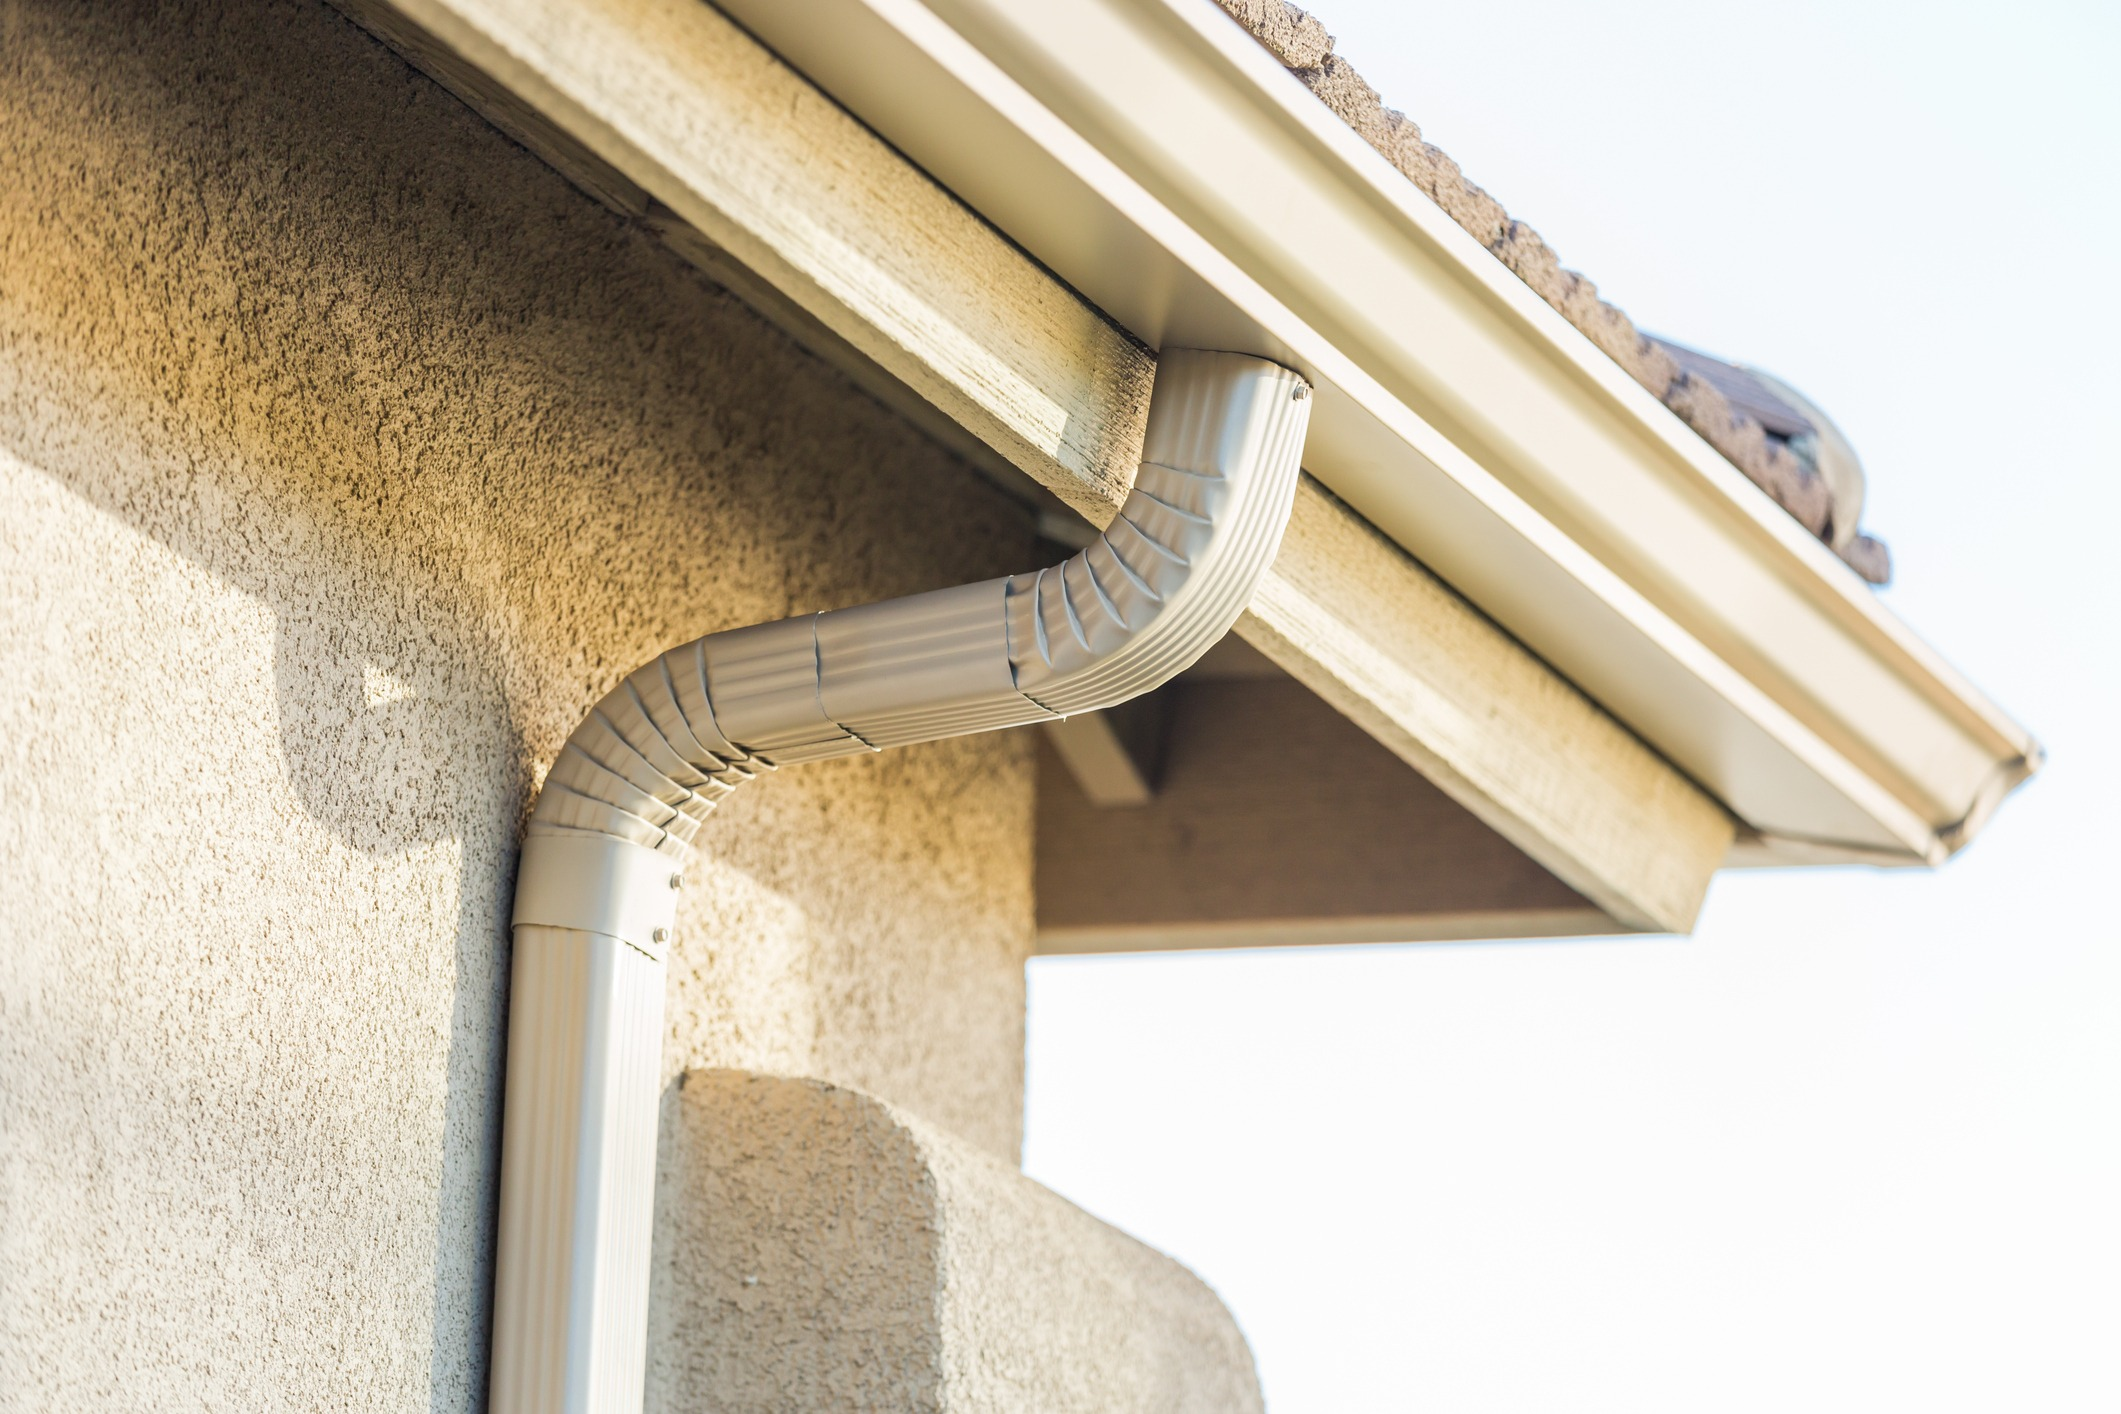 A drain spout going from the roof down the walls of a house